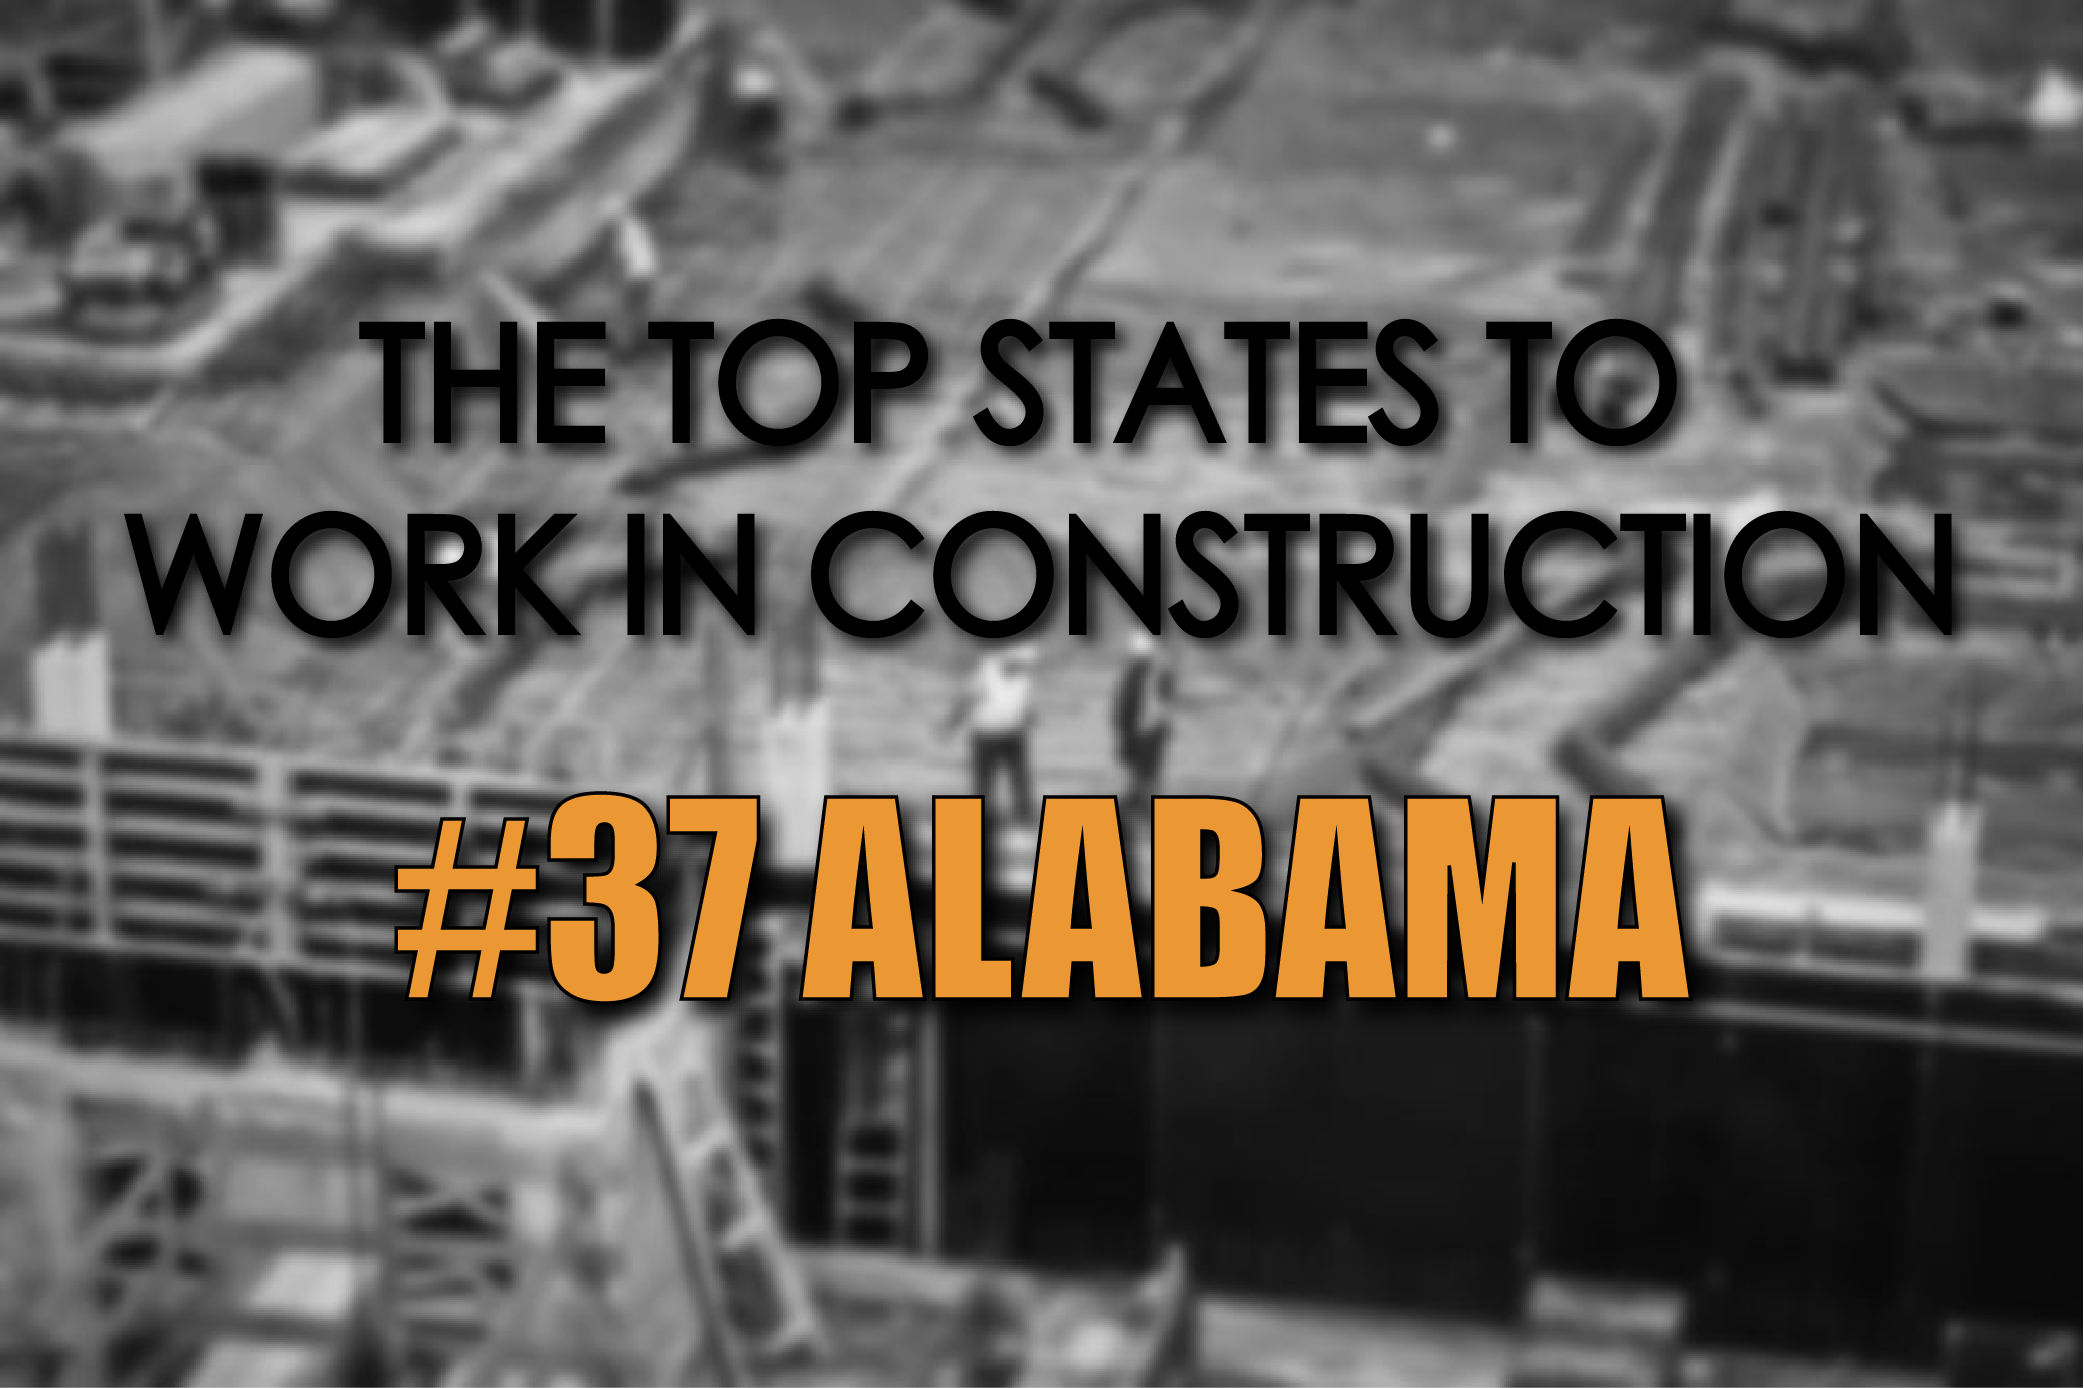 Alabama best states to work in construction